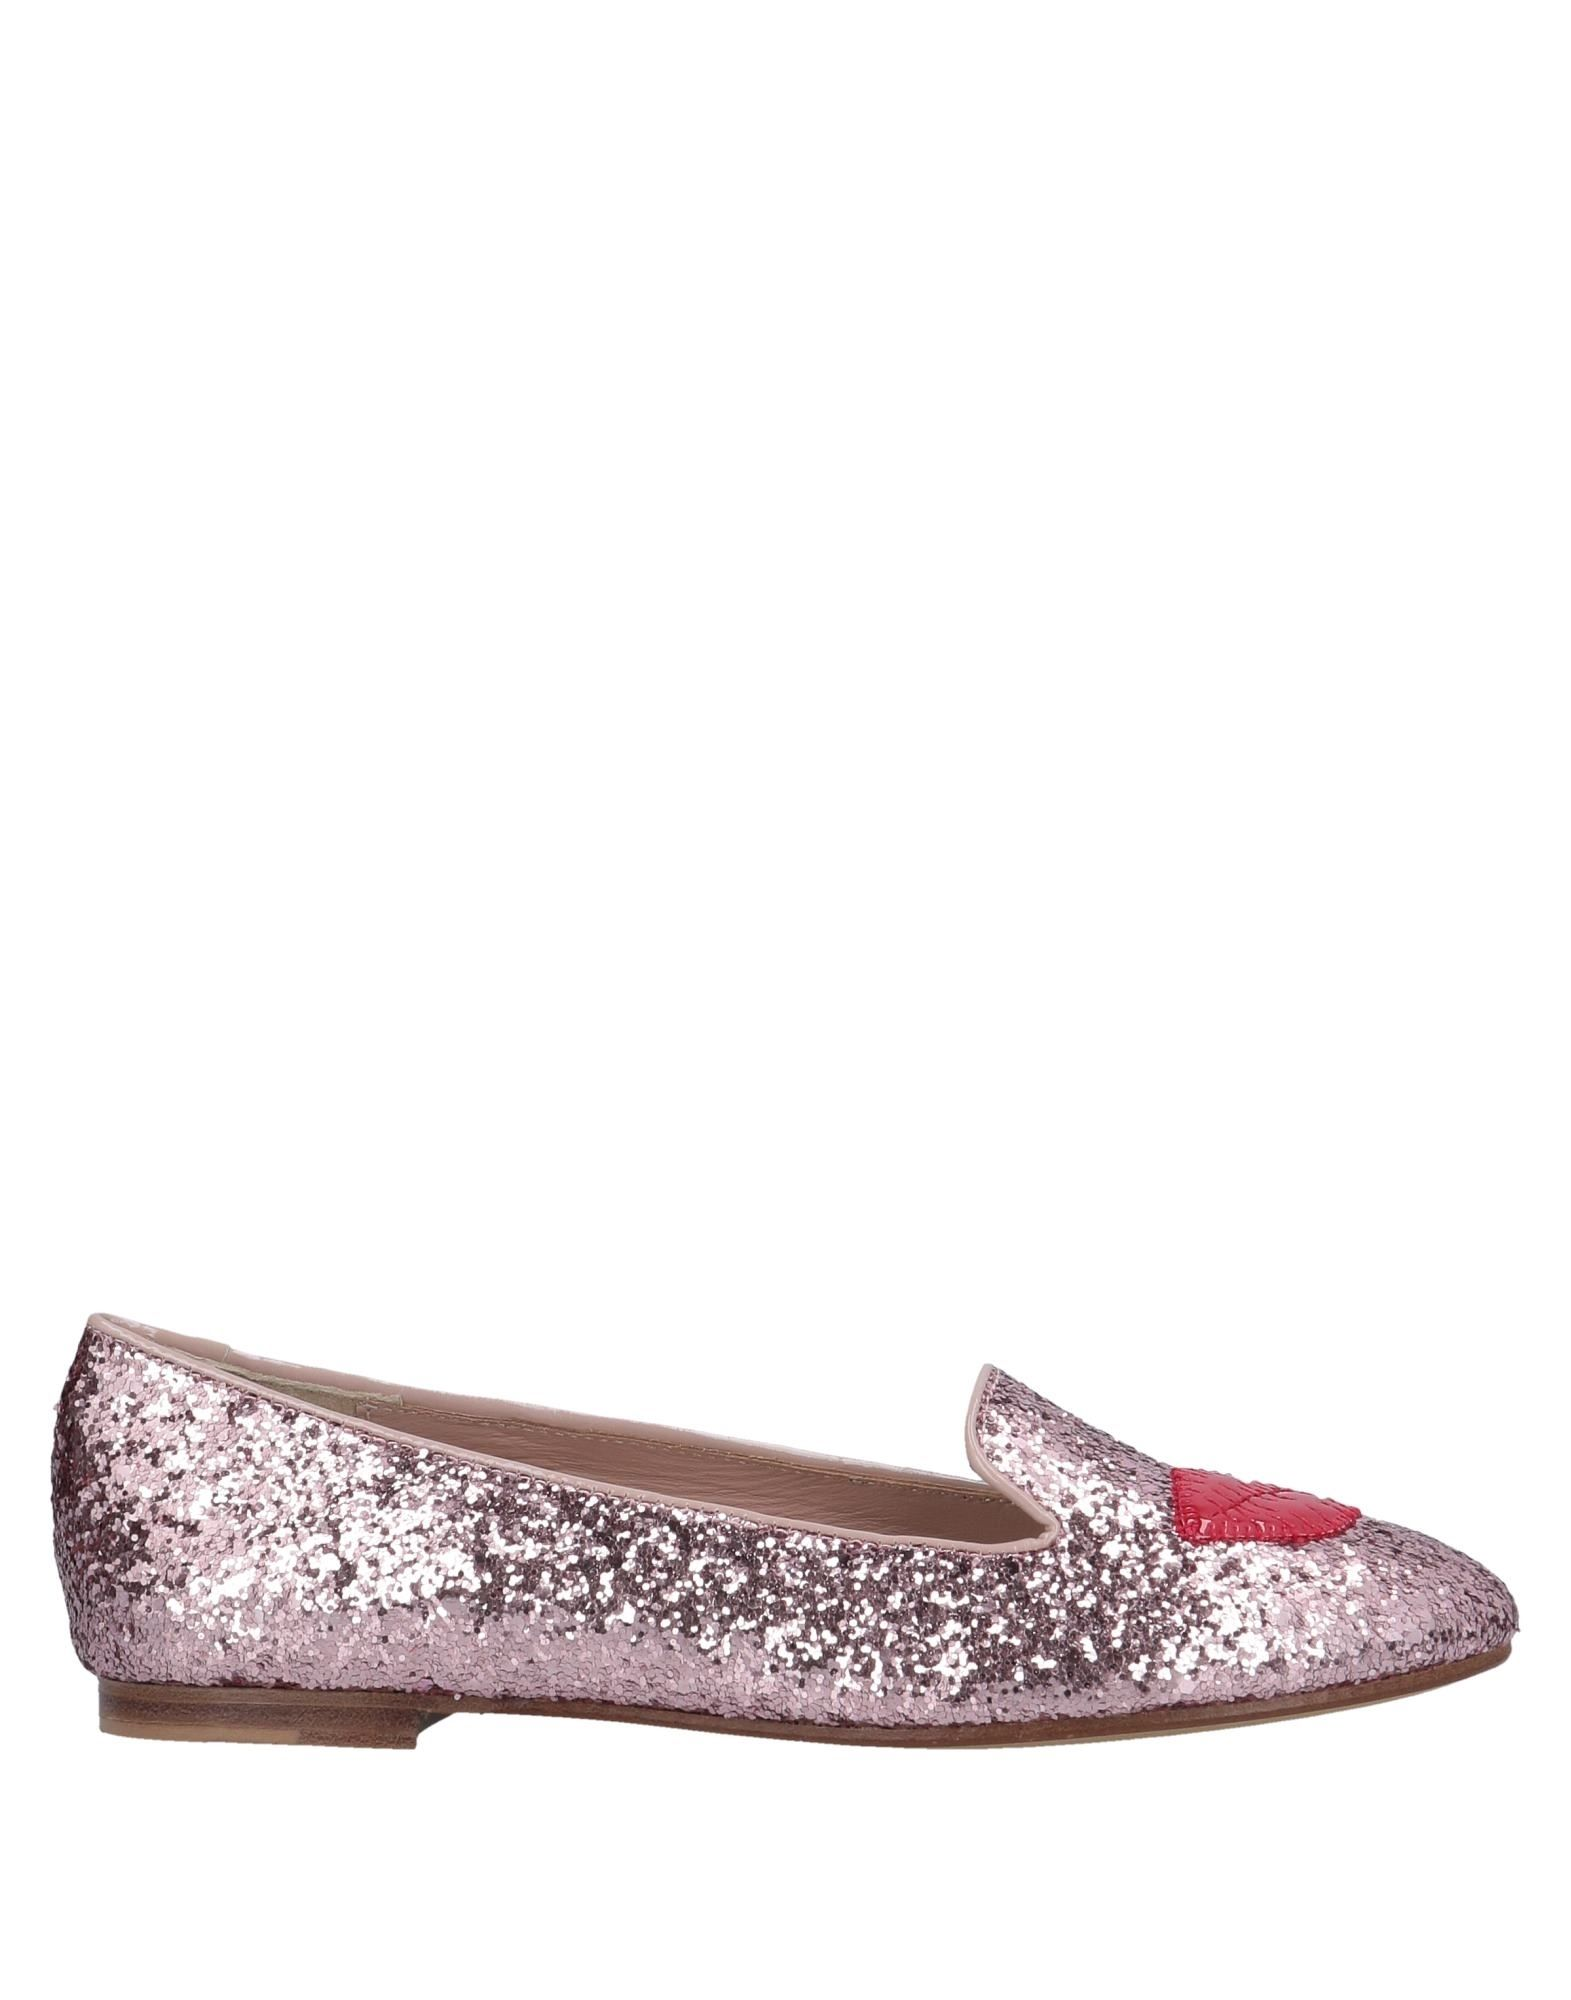 Chiara on Ferragni Loafers - Women Chiara Ferragni Loafers online on Chiara  Australia - 11395434NG e72f5c